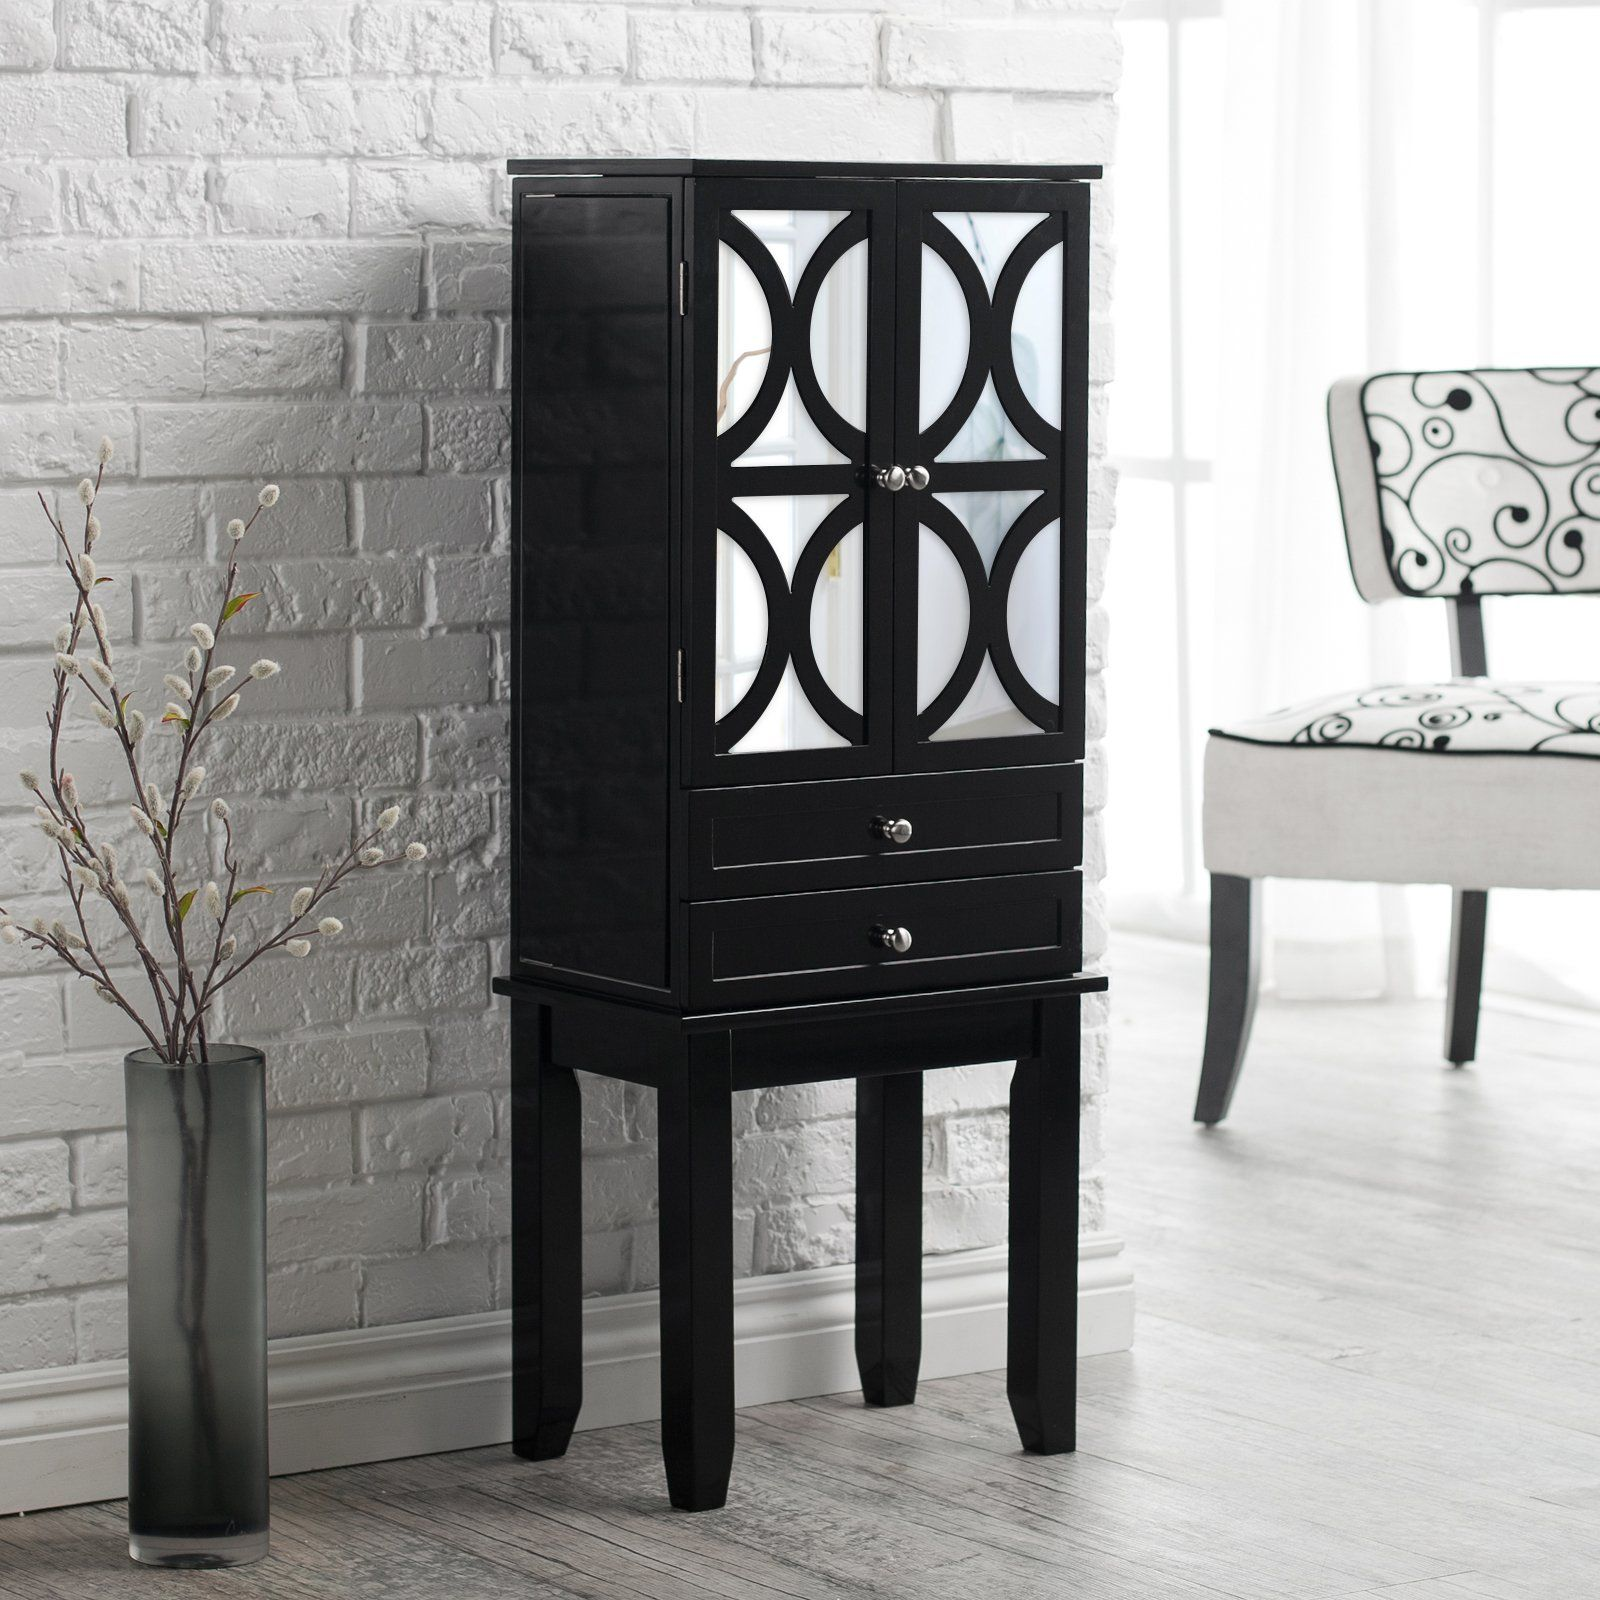 Have To Have It. Belham Living Mirrored Lattice Front